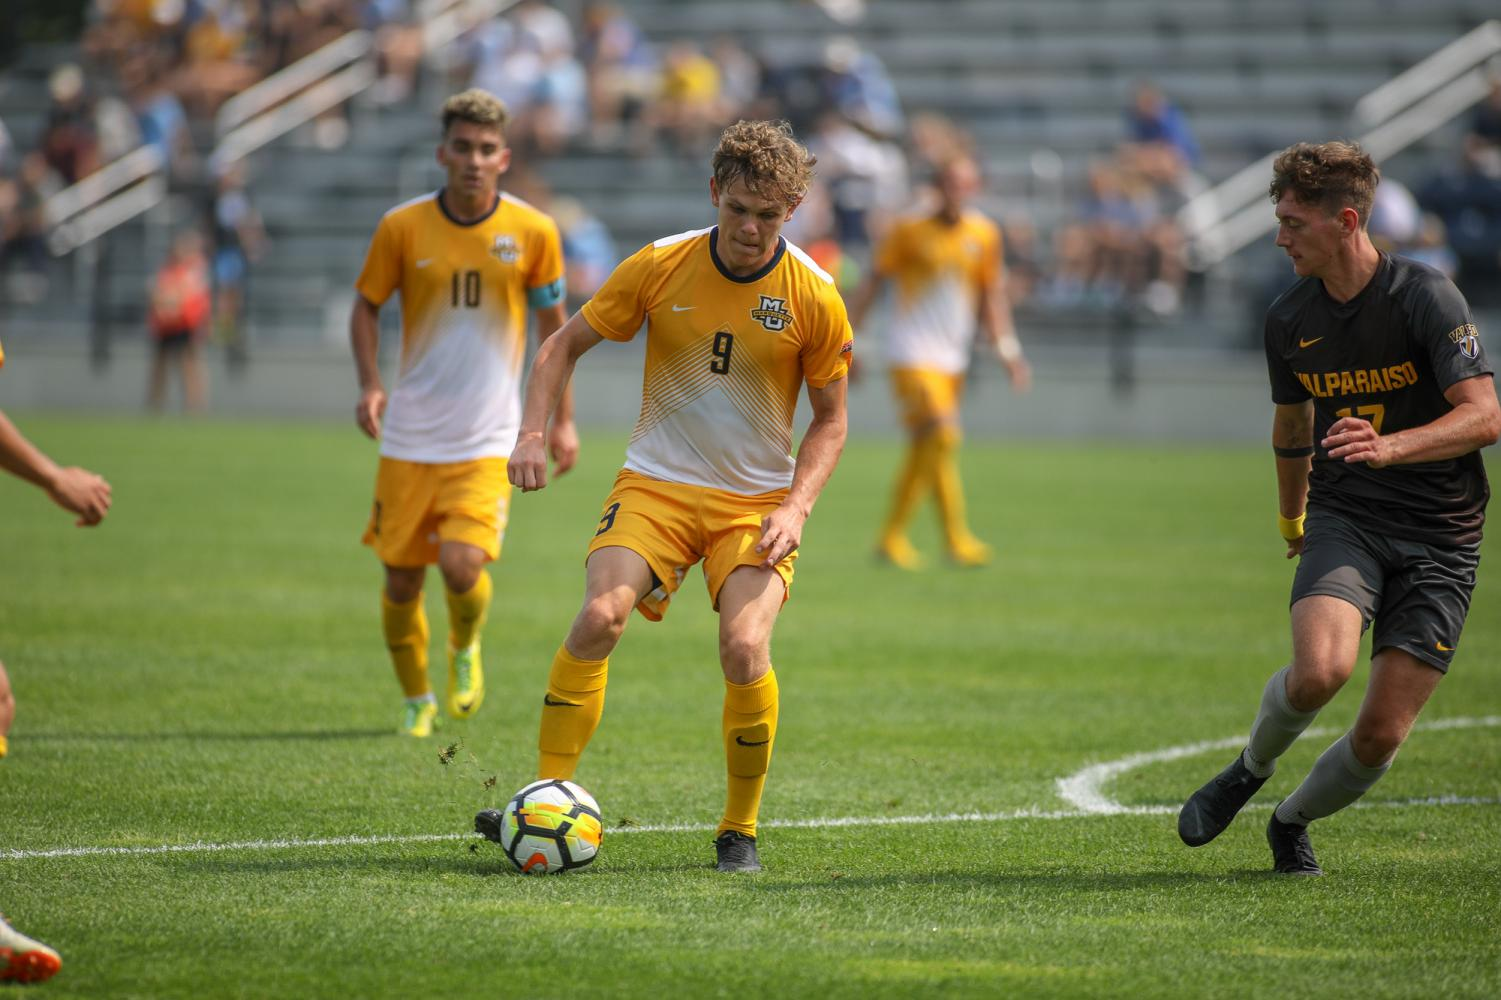 Lukas Sunneson scored a pair of goals in his Marquette debut Saturday afternoon. (Photo courtesy of Maggie Bean/Marquette Athletics)